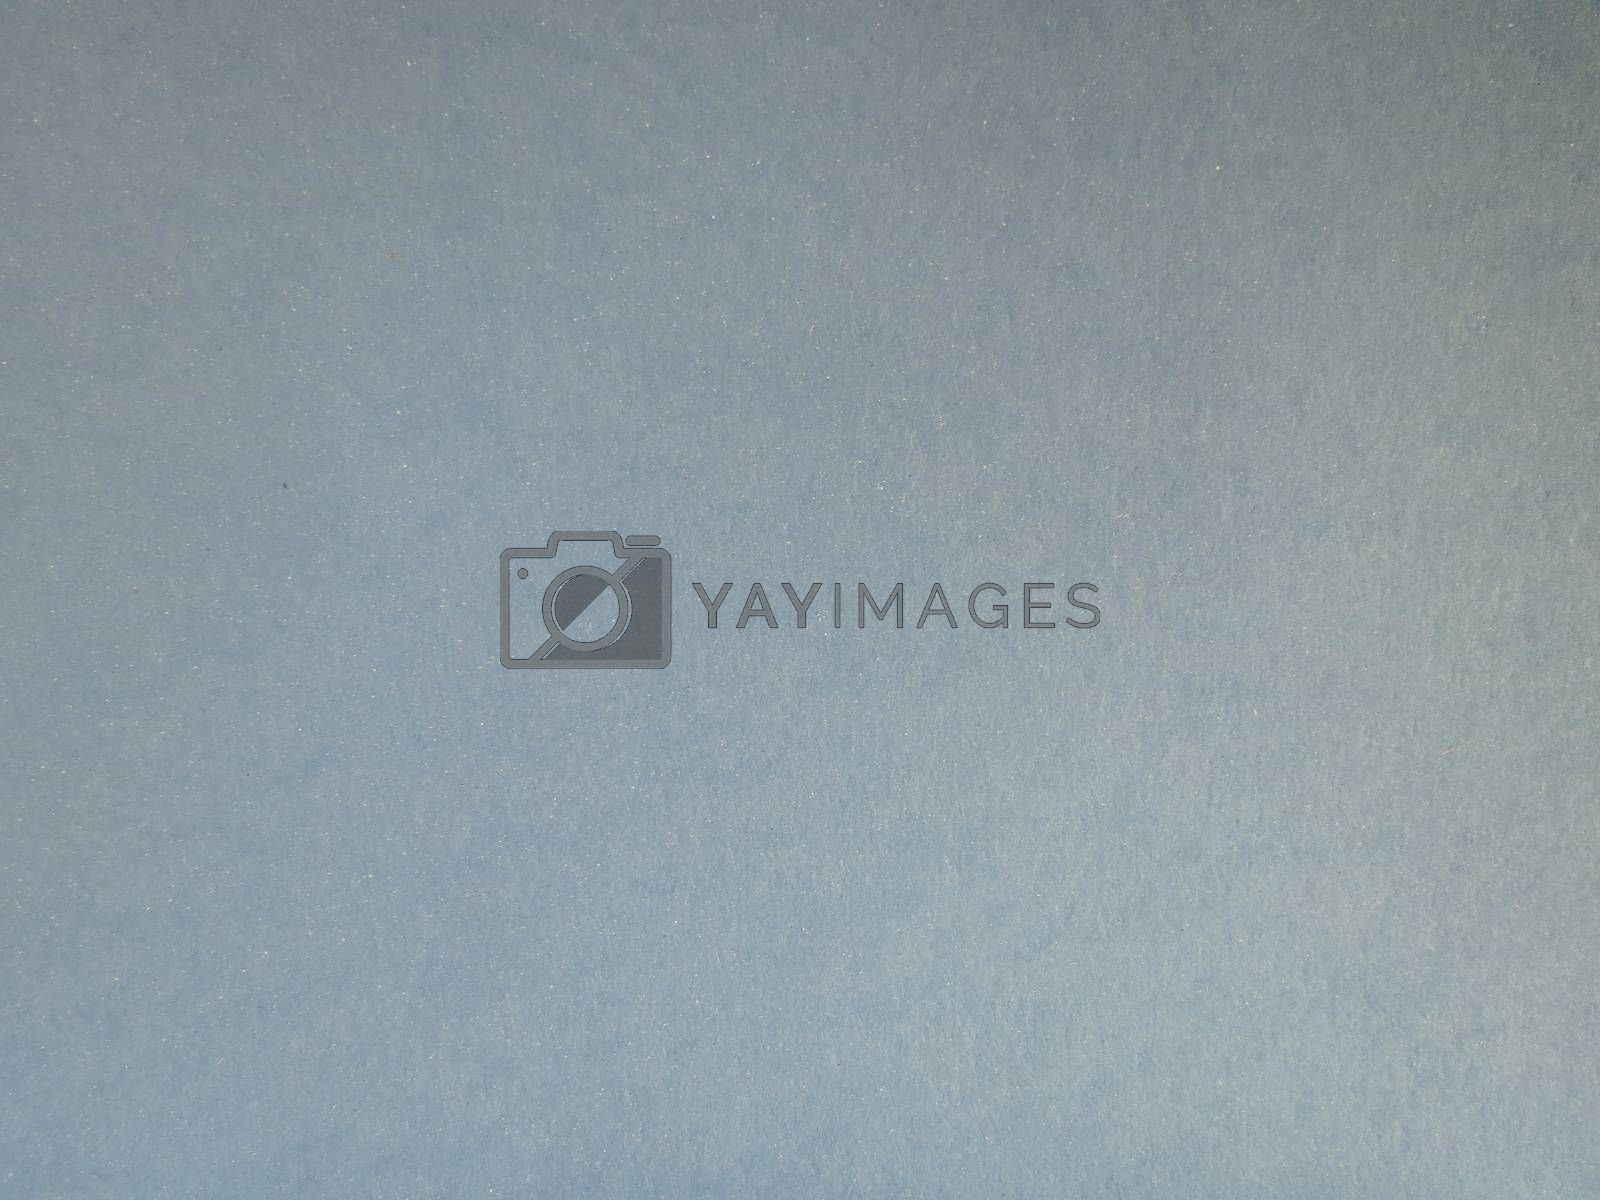 Royalty free image of blue paper background by paolo77